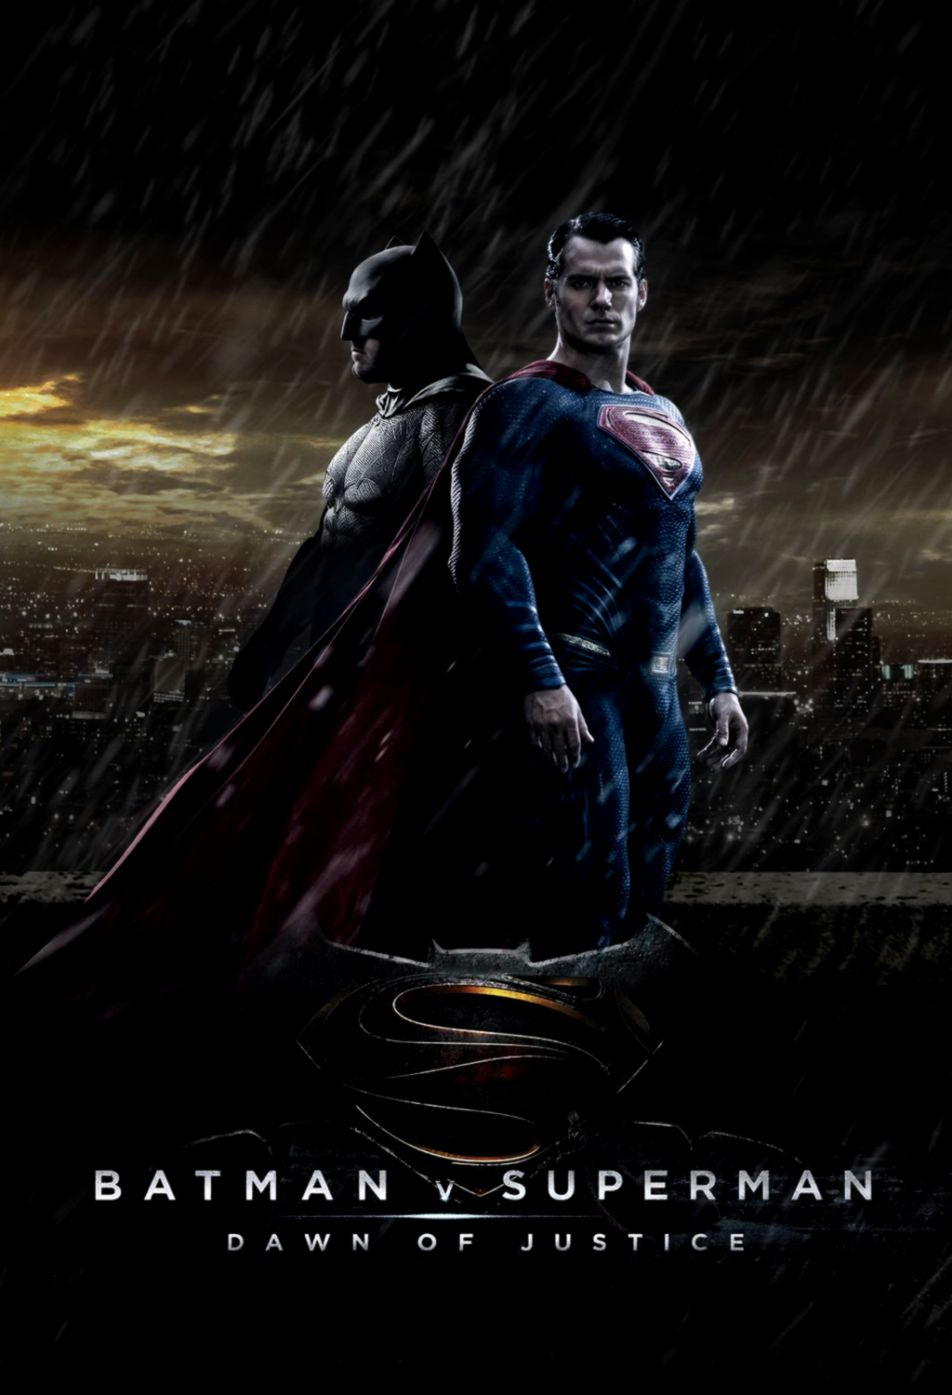 Batman V Superman Hd Poster Wallpapers Hippiehippieshakeshake